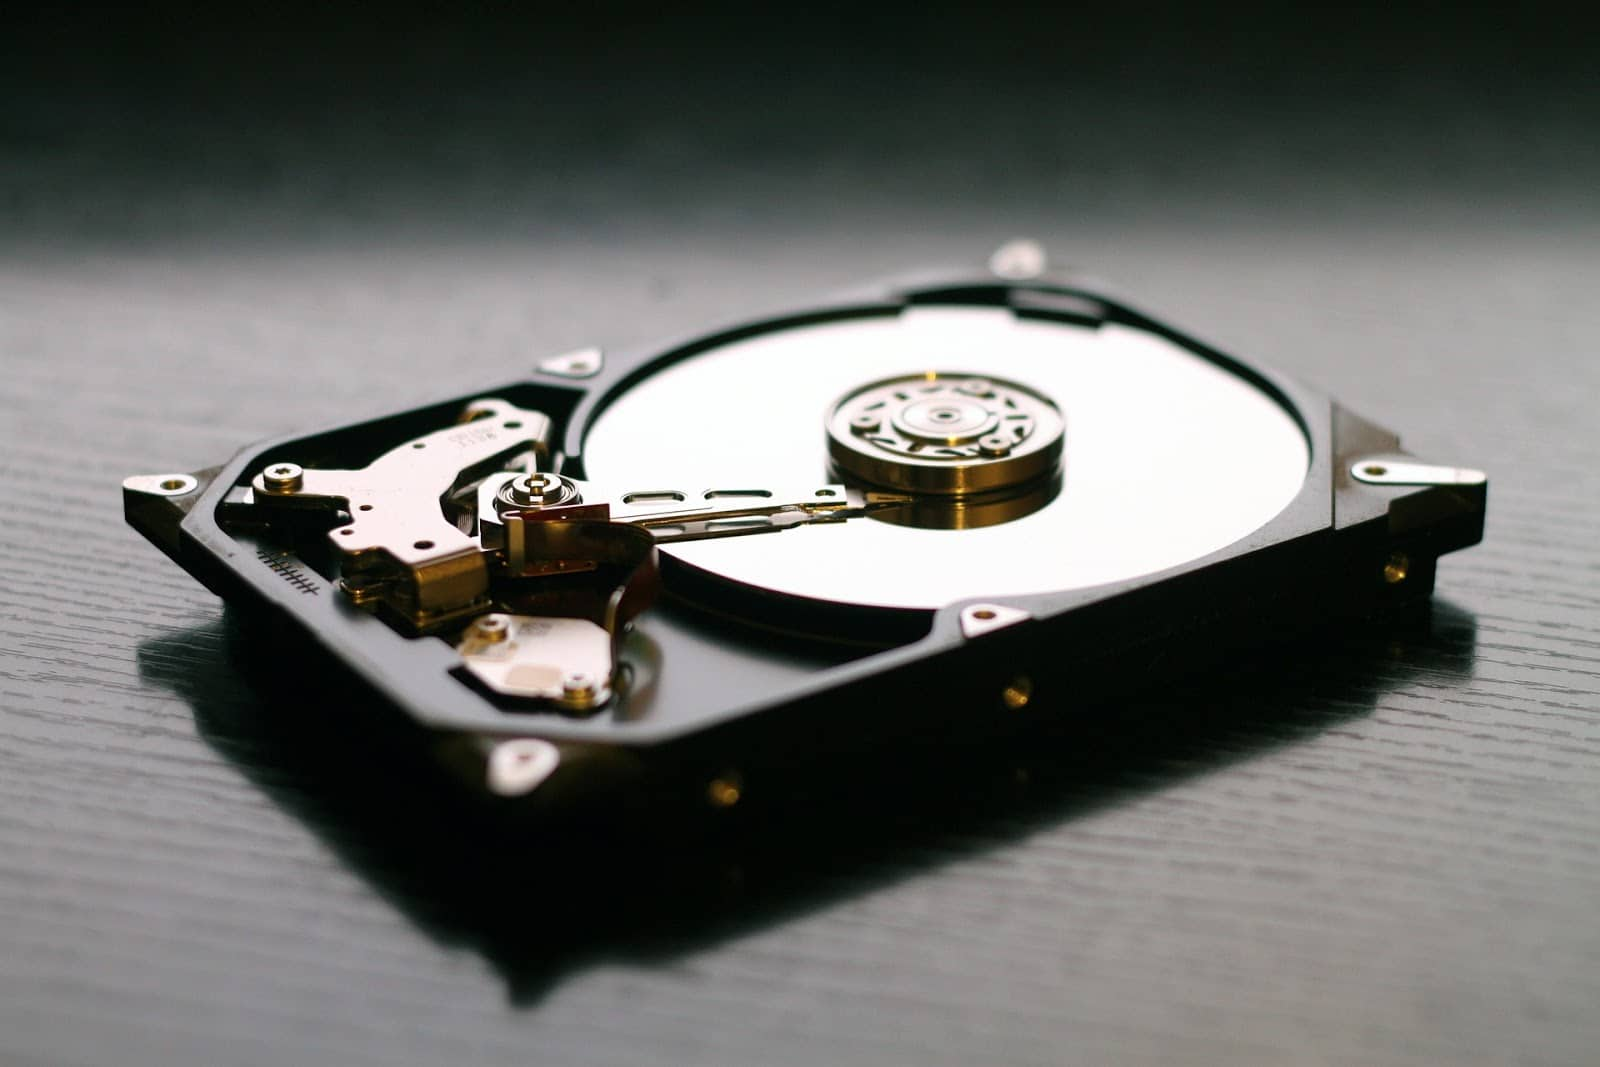 remove hard drive to fix the drive where windows is installed is locked